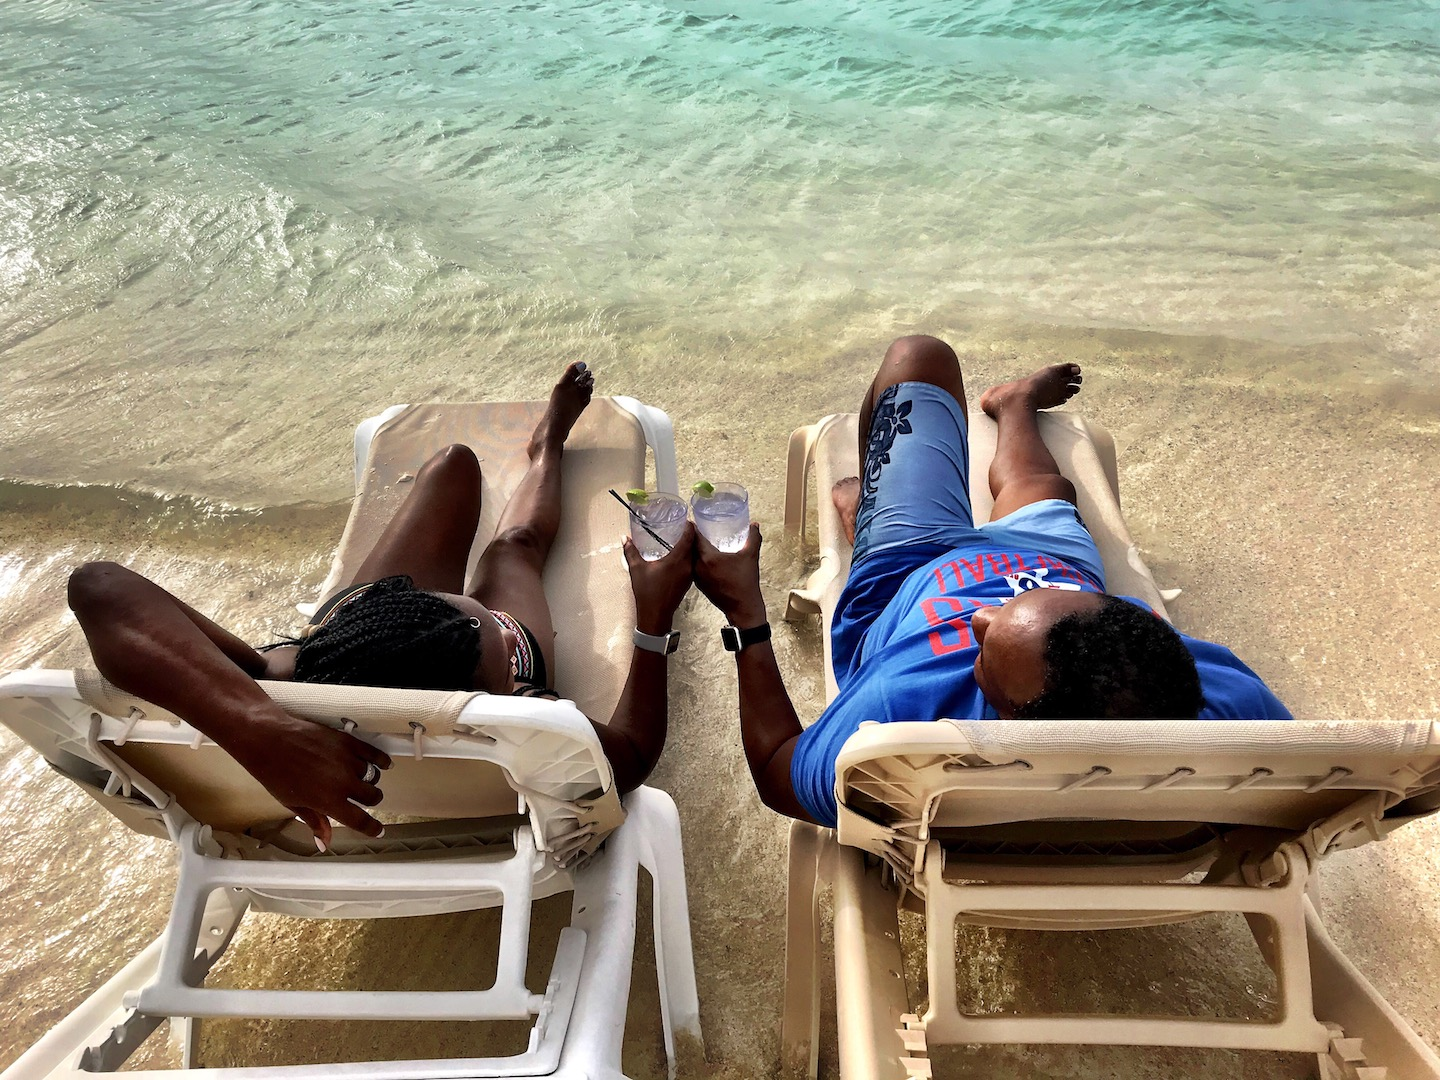 Sandals South Coast | Overwater Bungalows in Jamaica | James and I in the ocean